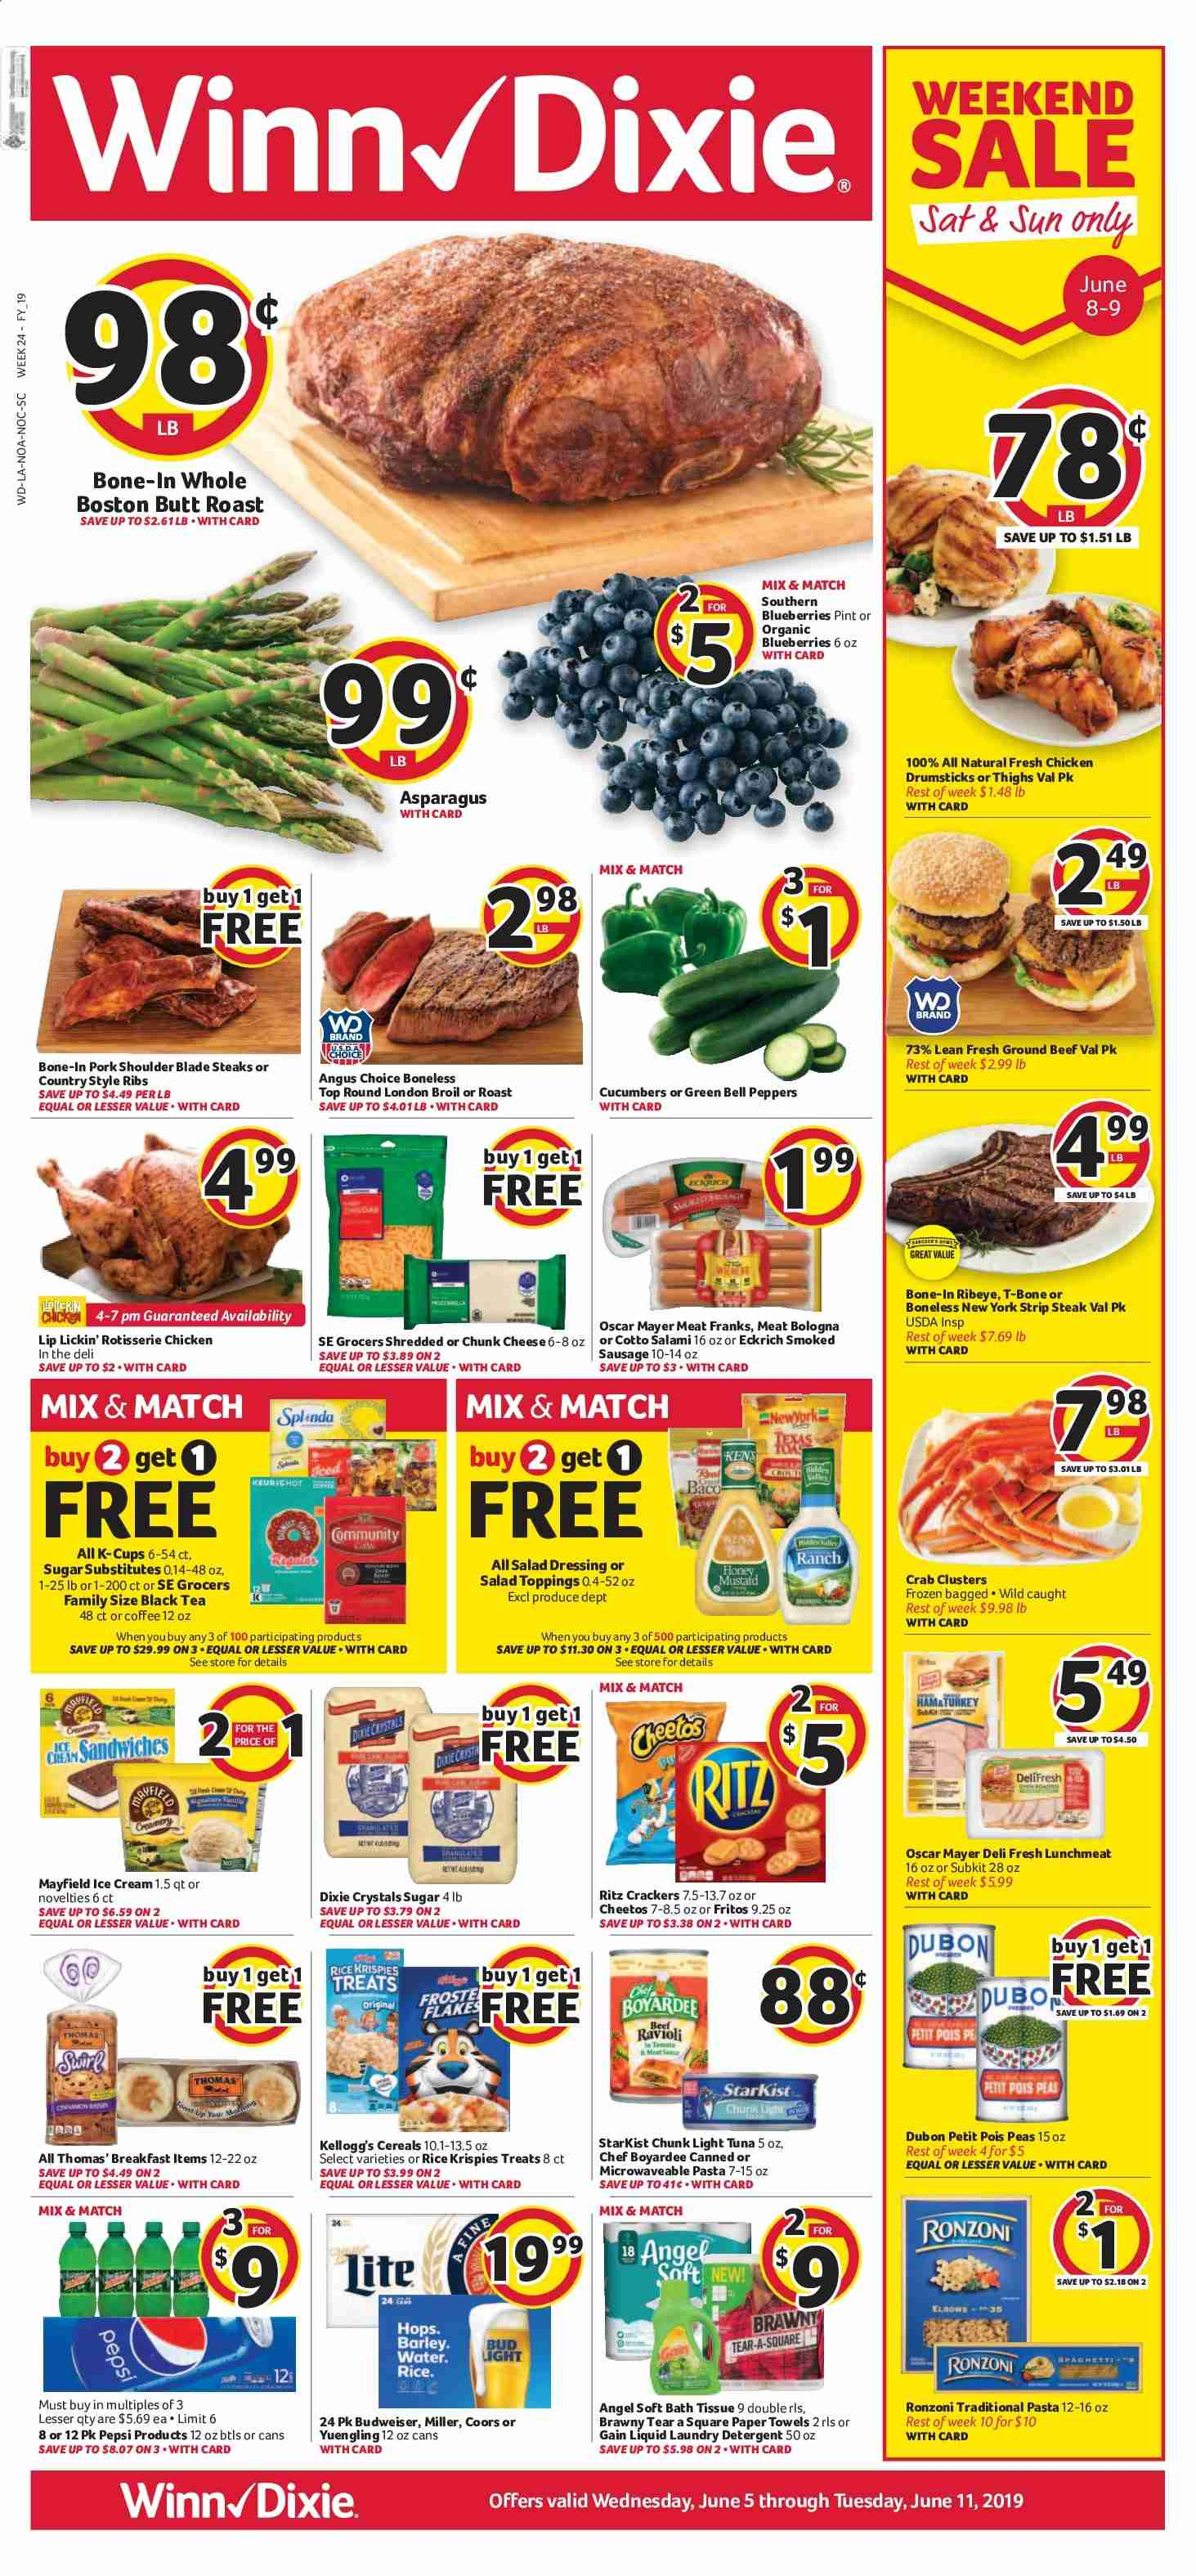 Winn Dixie Flyer - 06.05.2019 - 06.11.2019 - Sales products - Budweiser, Bud Light, Coors, Yuengling, asparagus, bell peppers, cucumbers, peas, peppers, blueberries, chicken, chicken legs, beef meat, steak, ground beef, pork meat, pork shoulder, tuna, crab, salami, sausage, smoked sausage, cheese, ice cream, cracker, crackers, Cheetos, light tuna, barley, cereals, Fritos, ranch dressing, dressing, salad dressing, Pepsi, water, tea, coffee, bath tissue, paper towel, detergent, Gain, laundry detergent, ribs, cotto. Page 1.